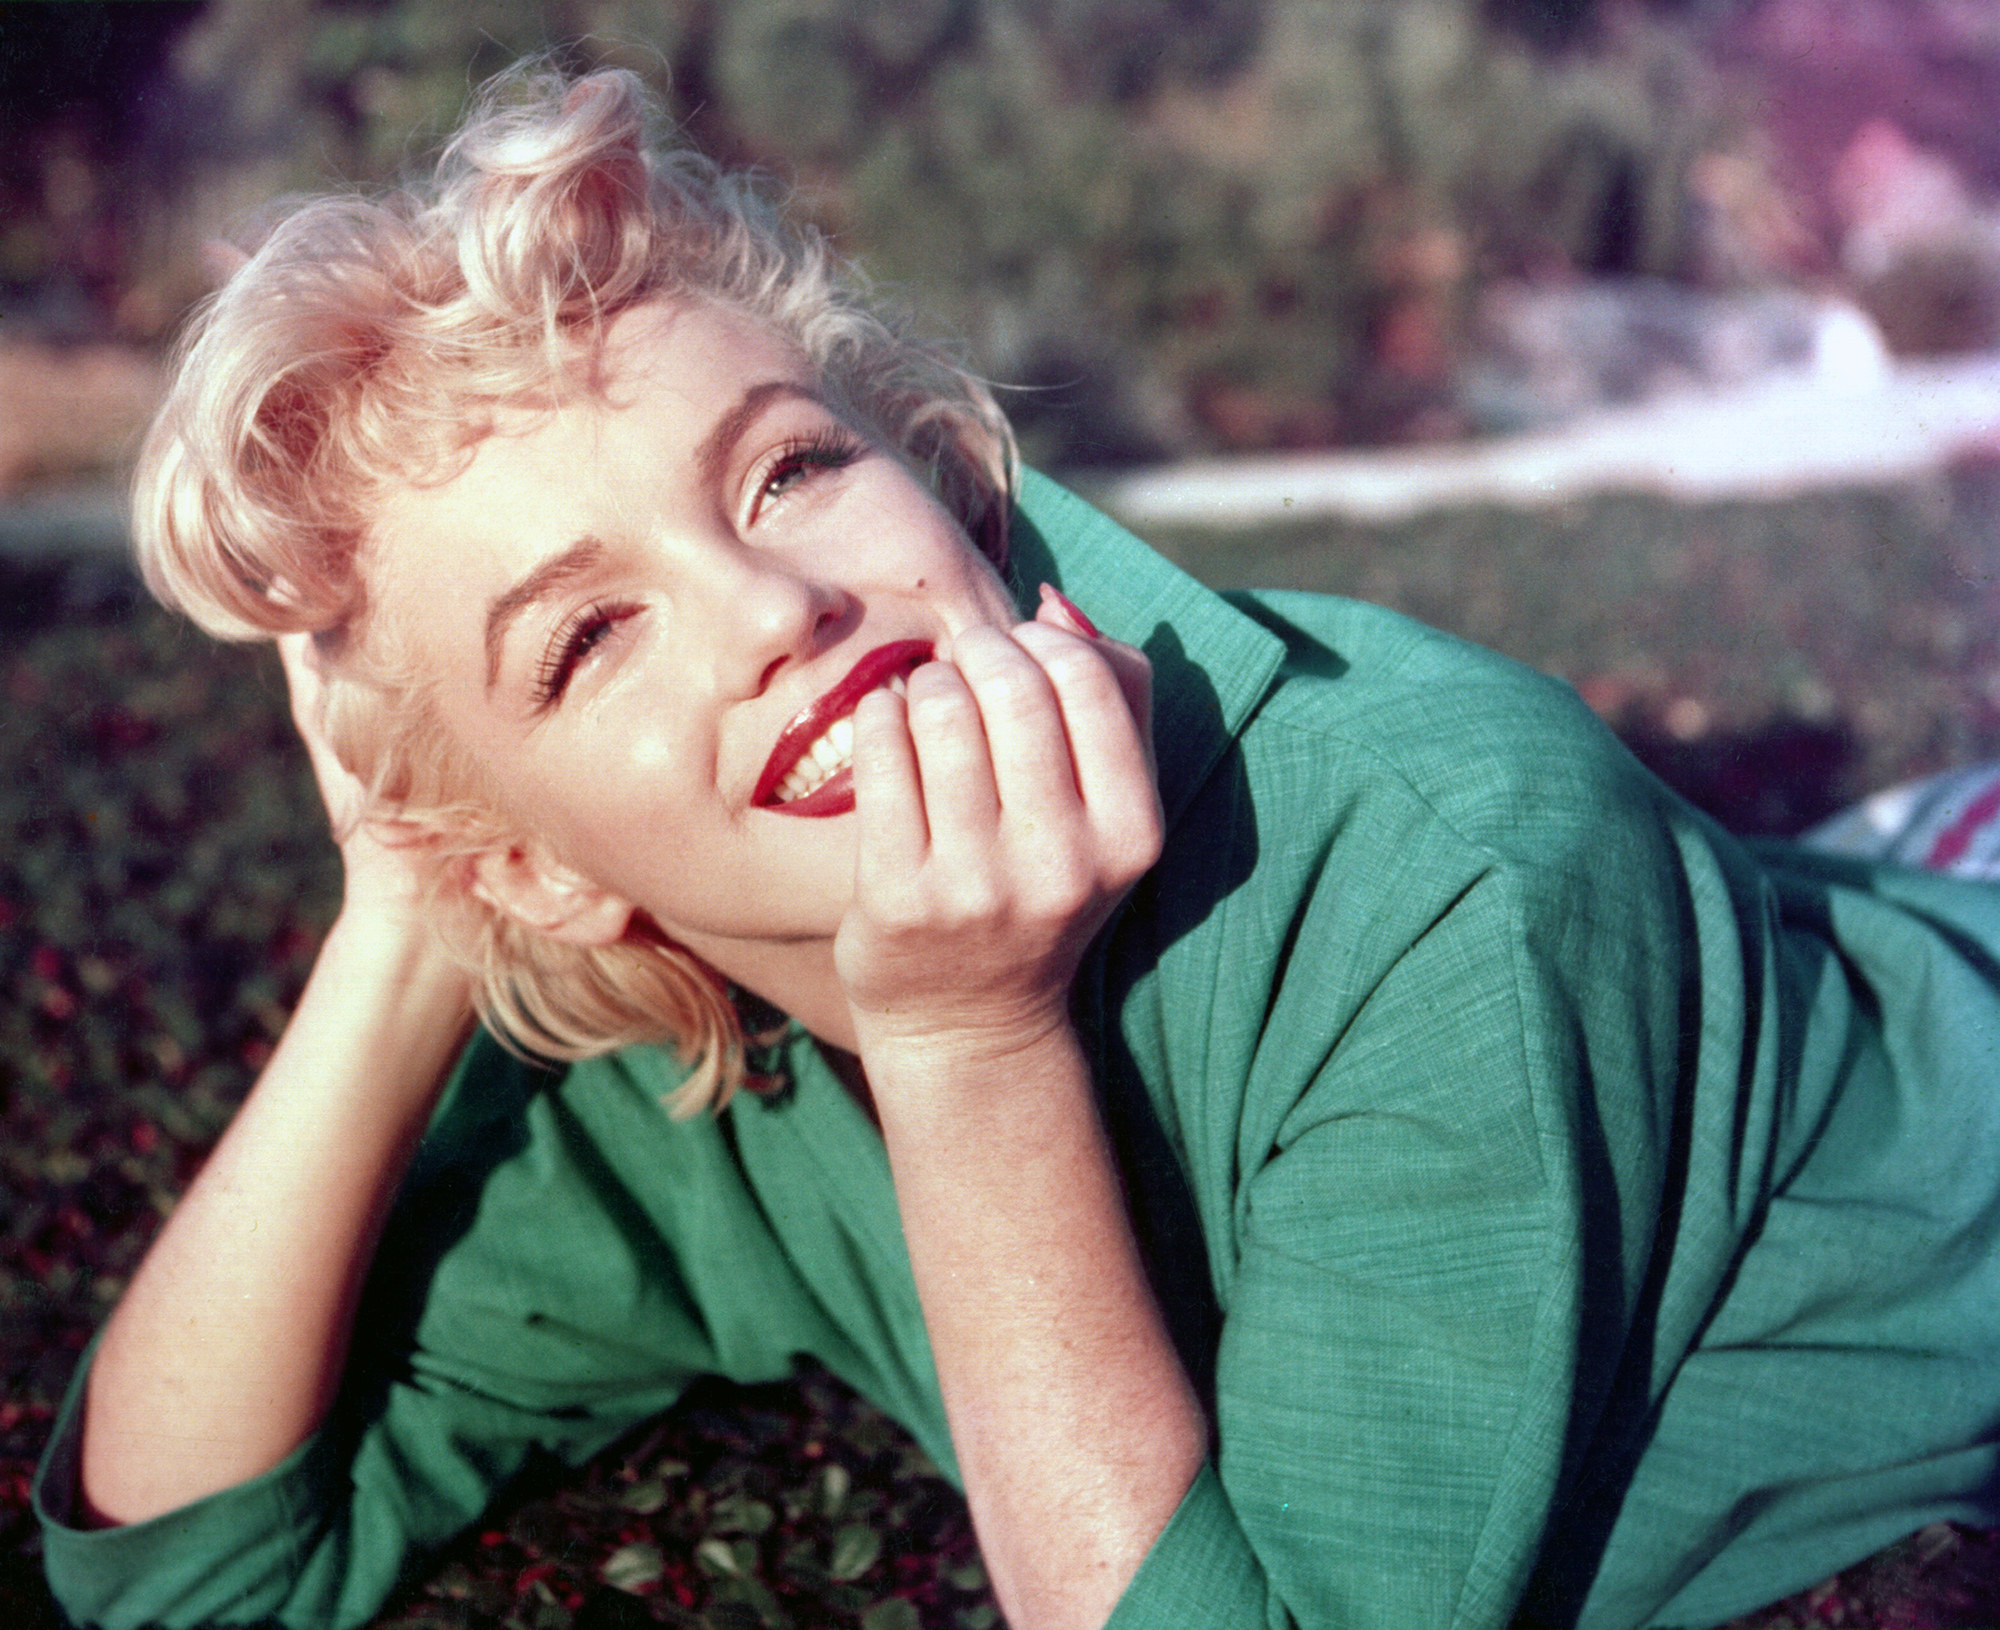 Marilyn Monroe lying on the grass in a suit